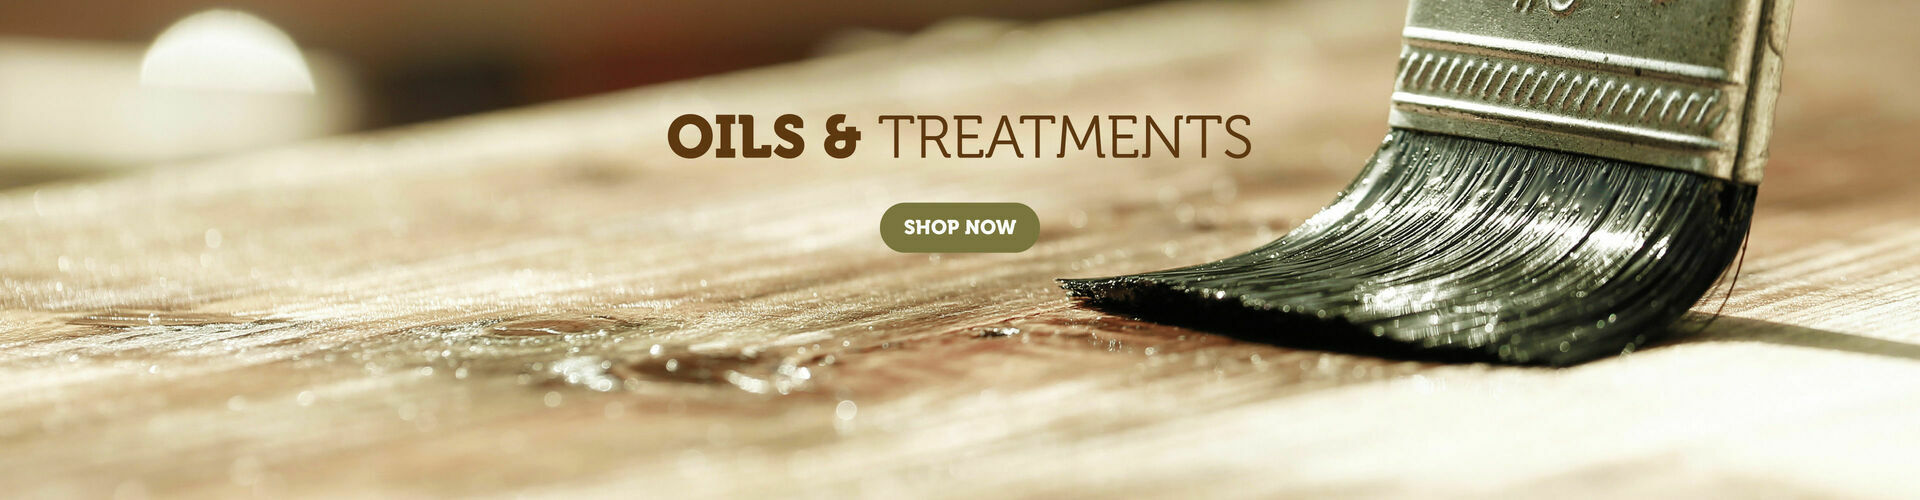 Osmo Oils & Treatments - Protecting your wood all year round